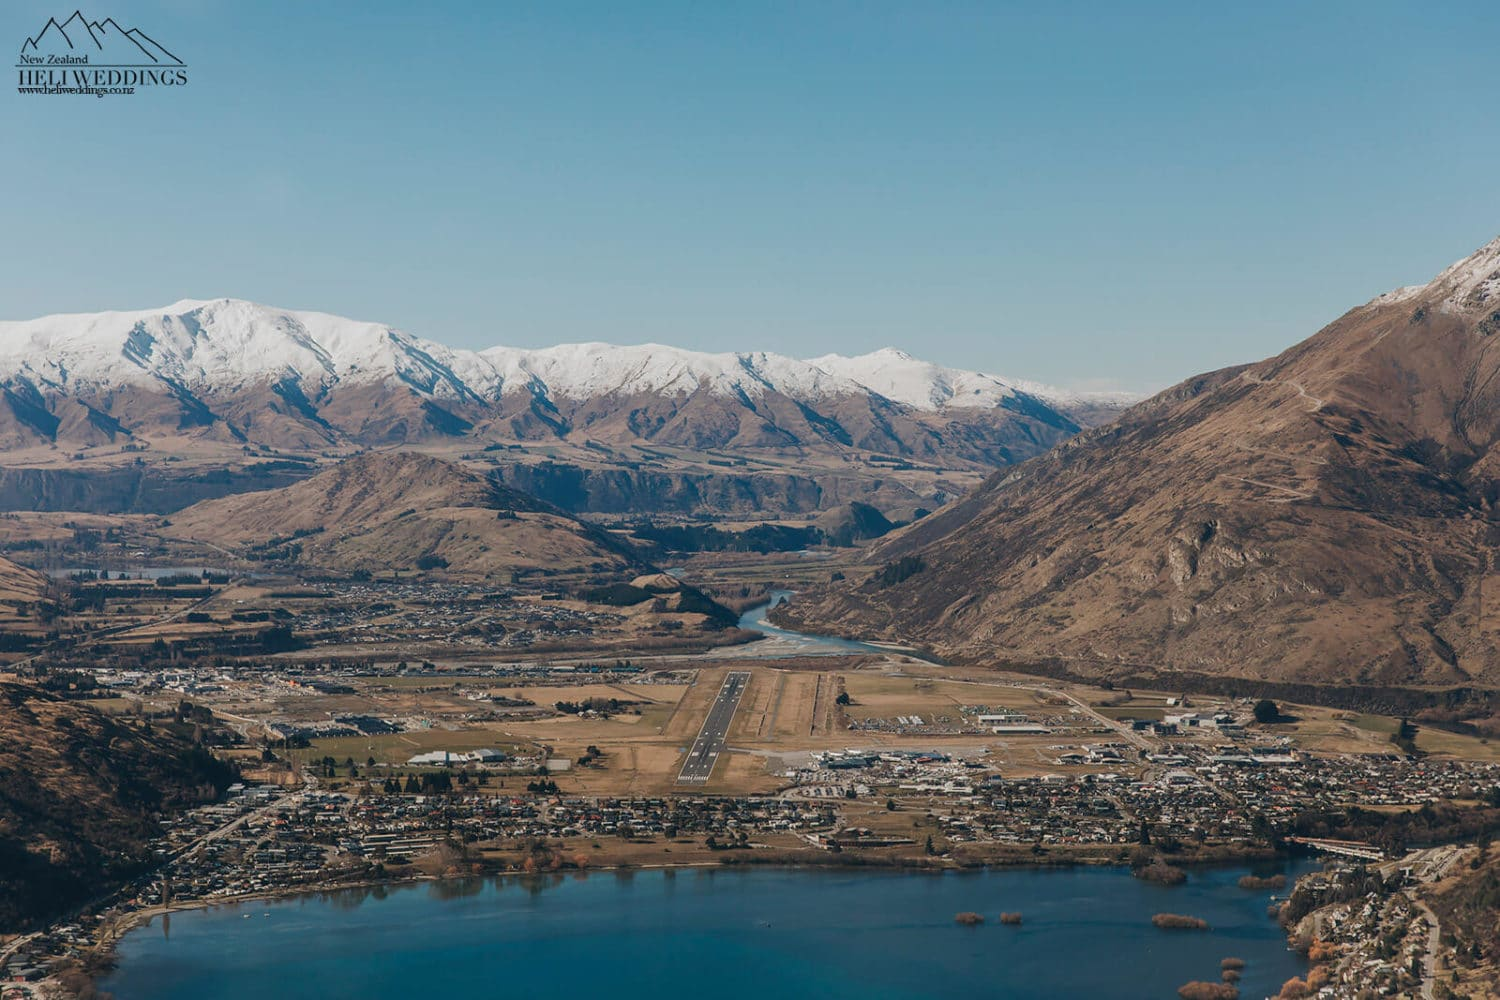 Coming in to land in Queenstown